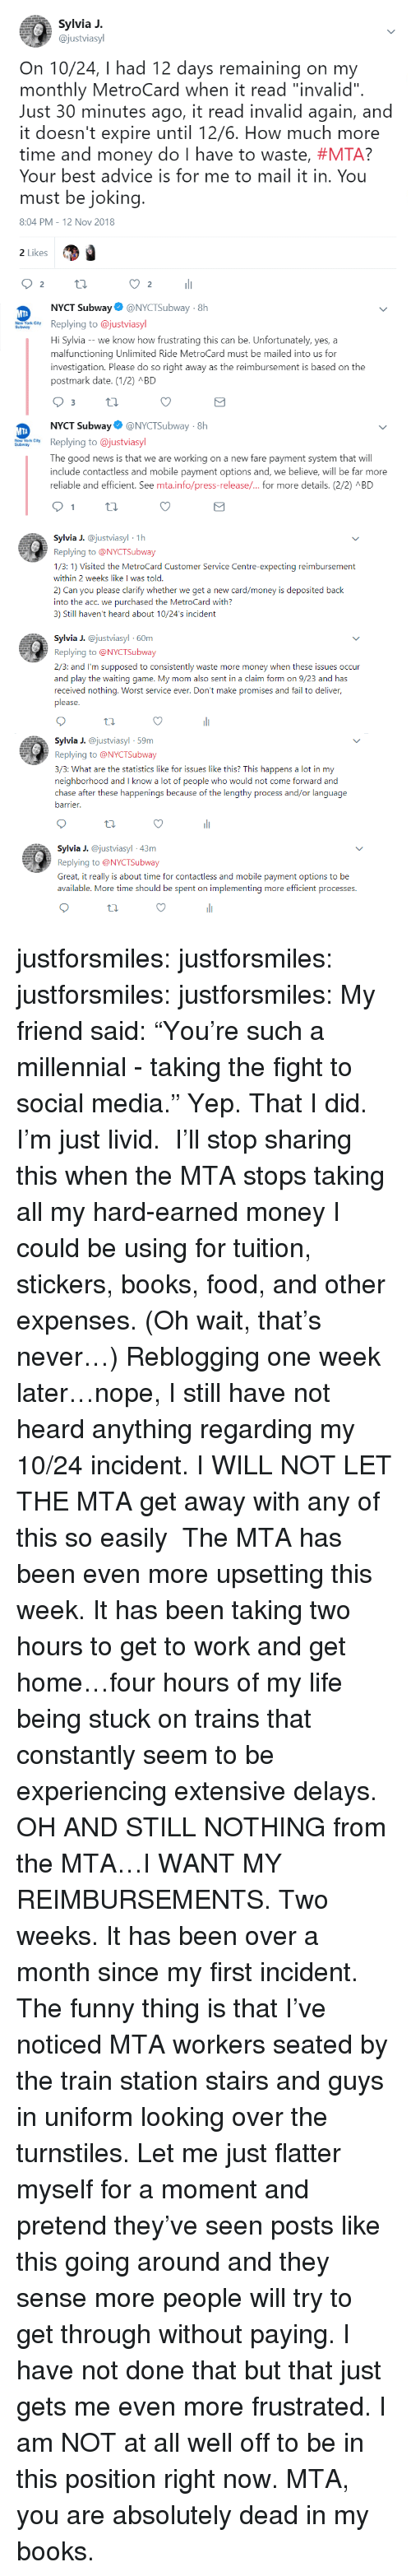 """Advice, Books, and Fail: Sylvia J.  @justviasyl  On 10/24, I had 12 days remaining on my  monthly MetroCard when it read """"invalid""""  Just 30 minutes ago, it read invalid again, and  it doesn't expire until 12/6. How much more  time and money do I have to waste, #MTA?  Your best advice is for me to mail it in. You  must be jokin  8:04 PM-12 Nov 2018  2 Likes  2  li  2  NYCT Subway@NYCTSubway-8h  wReplying to @justviasyl  Hi Sylvia - -we know how frustrating this can be. Unfortunately, yes, a  malfunctioning Unlimited Ride MetroCard must be mailed into us for  investigation. Please do so right away as the reimbursement is based on the  postmark date. (12) ABD  NYCT Subway@NYCTSubway 8h  Replying to @justviasyl  The good news is that we are working on a new fare payment system that will  include contactless and mobile payment options and, we believe, will be far more  reliable and efficient. See mtainfo/press-release/ for more details. (2/2) л BD  a J. @justviasyl 1h  Replying to @NYCTSubway  1/3: 1) Visited the MetroCard Customer Service Centre-expecting reimbursement  within 2 weeks like I was told.  2) Can you please clarify whether we get a new card/money is deposited baclk  into the acc. we purchased the MetroCard with?  3) Still haven't heard about 10/24's incident  Sylvia J. @justviasyl 60m  Replying to @NYCTSubway  2/3: and I'm supposed to consistently waste more money when these issues occur  and play the waiting game. My mom also sent in a claim form on 9/23 and has  received nothing. Worst service ever. Don't make promises and fail to deliver,  please  Syia J. @justviasyl 59m  Replying to @NYCTSubway  3/3: What are the statistics like for issues like this? This happens a lot in my  neighborhood and I know a lot of people who would not come forward and  chase after these happenings because of the lengthy process and/or language  arrier  Sylia J. @justviasyl 43m  Replying to @NYCTSubway  Great, it really is about time for contactless and mobile payment options """